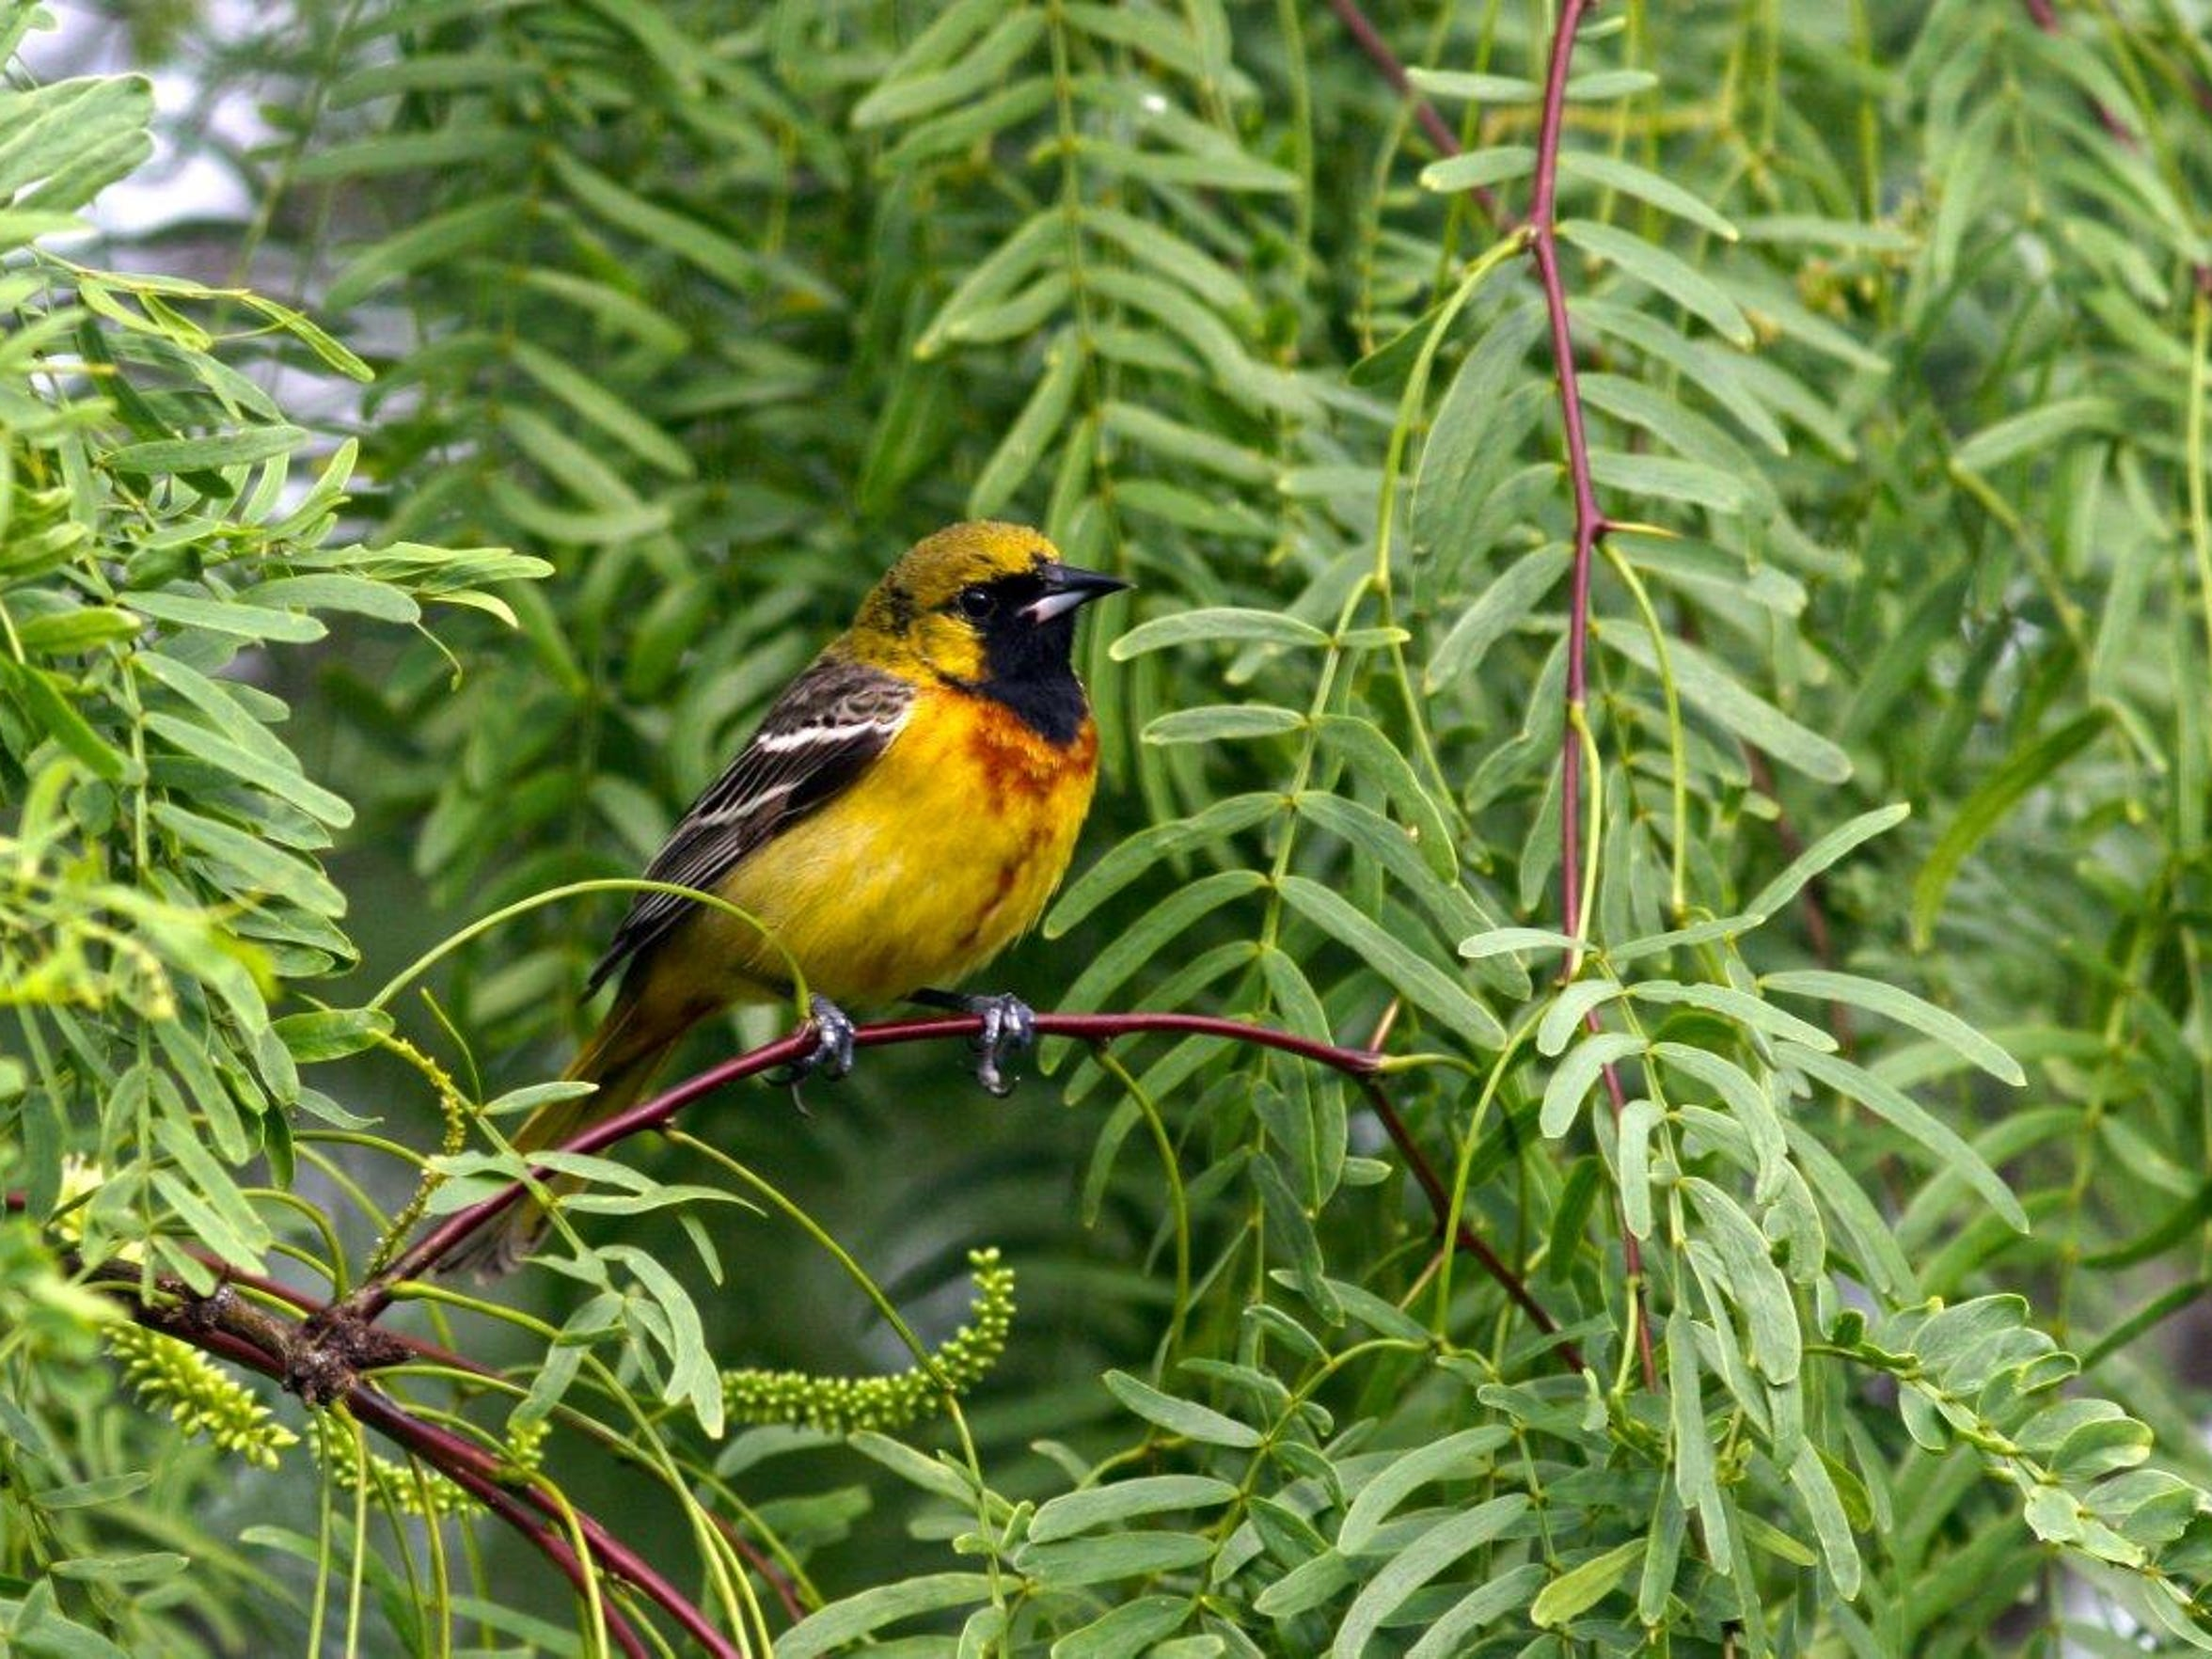 This young male Orchard Oriole was photographed in